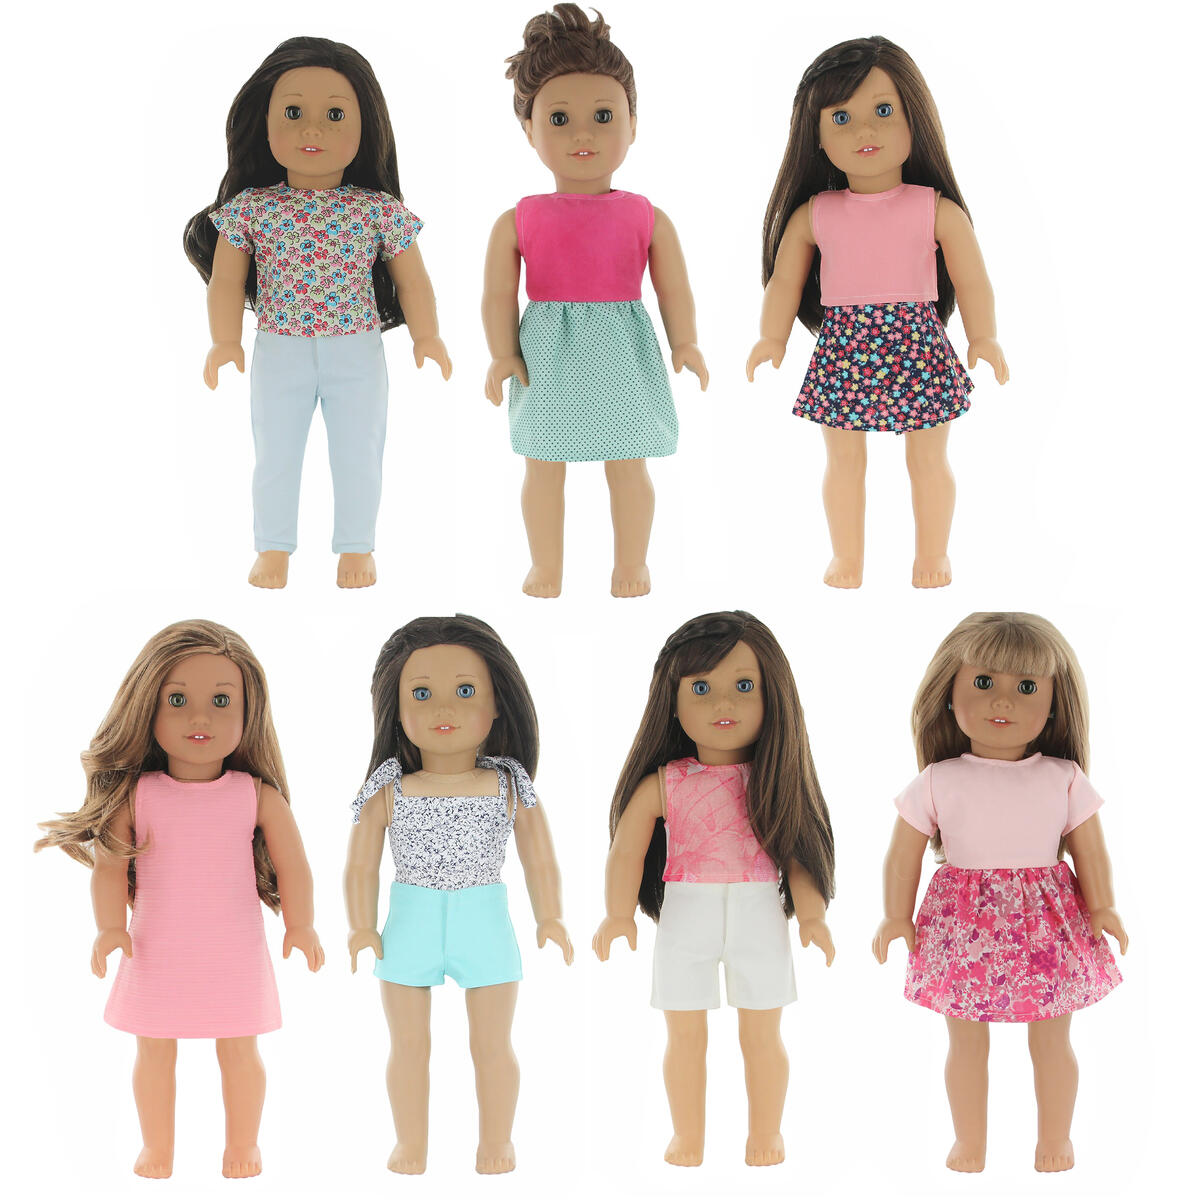 18 Inch Doll Clothes - Fits American Girl Doll Clothes- Wardrobe Makeover, 7 Outfits